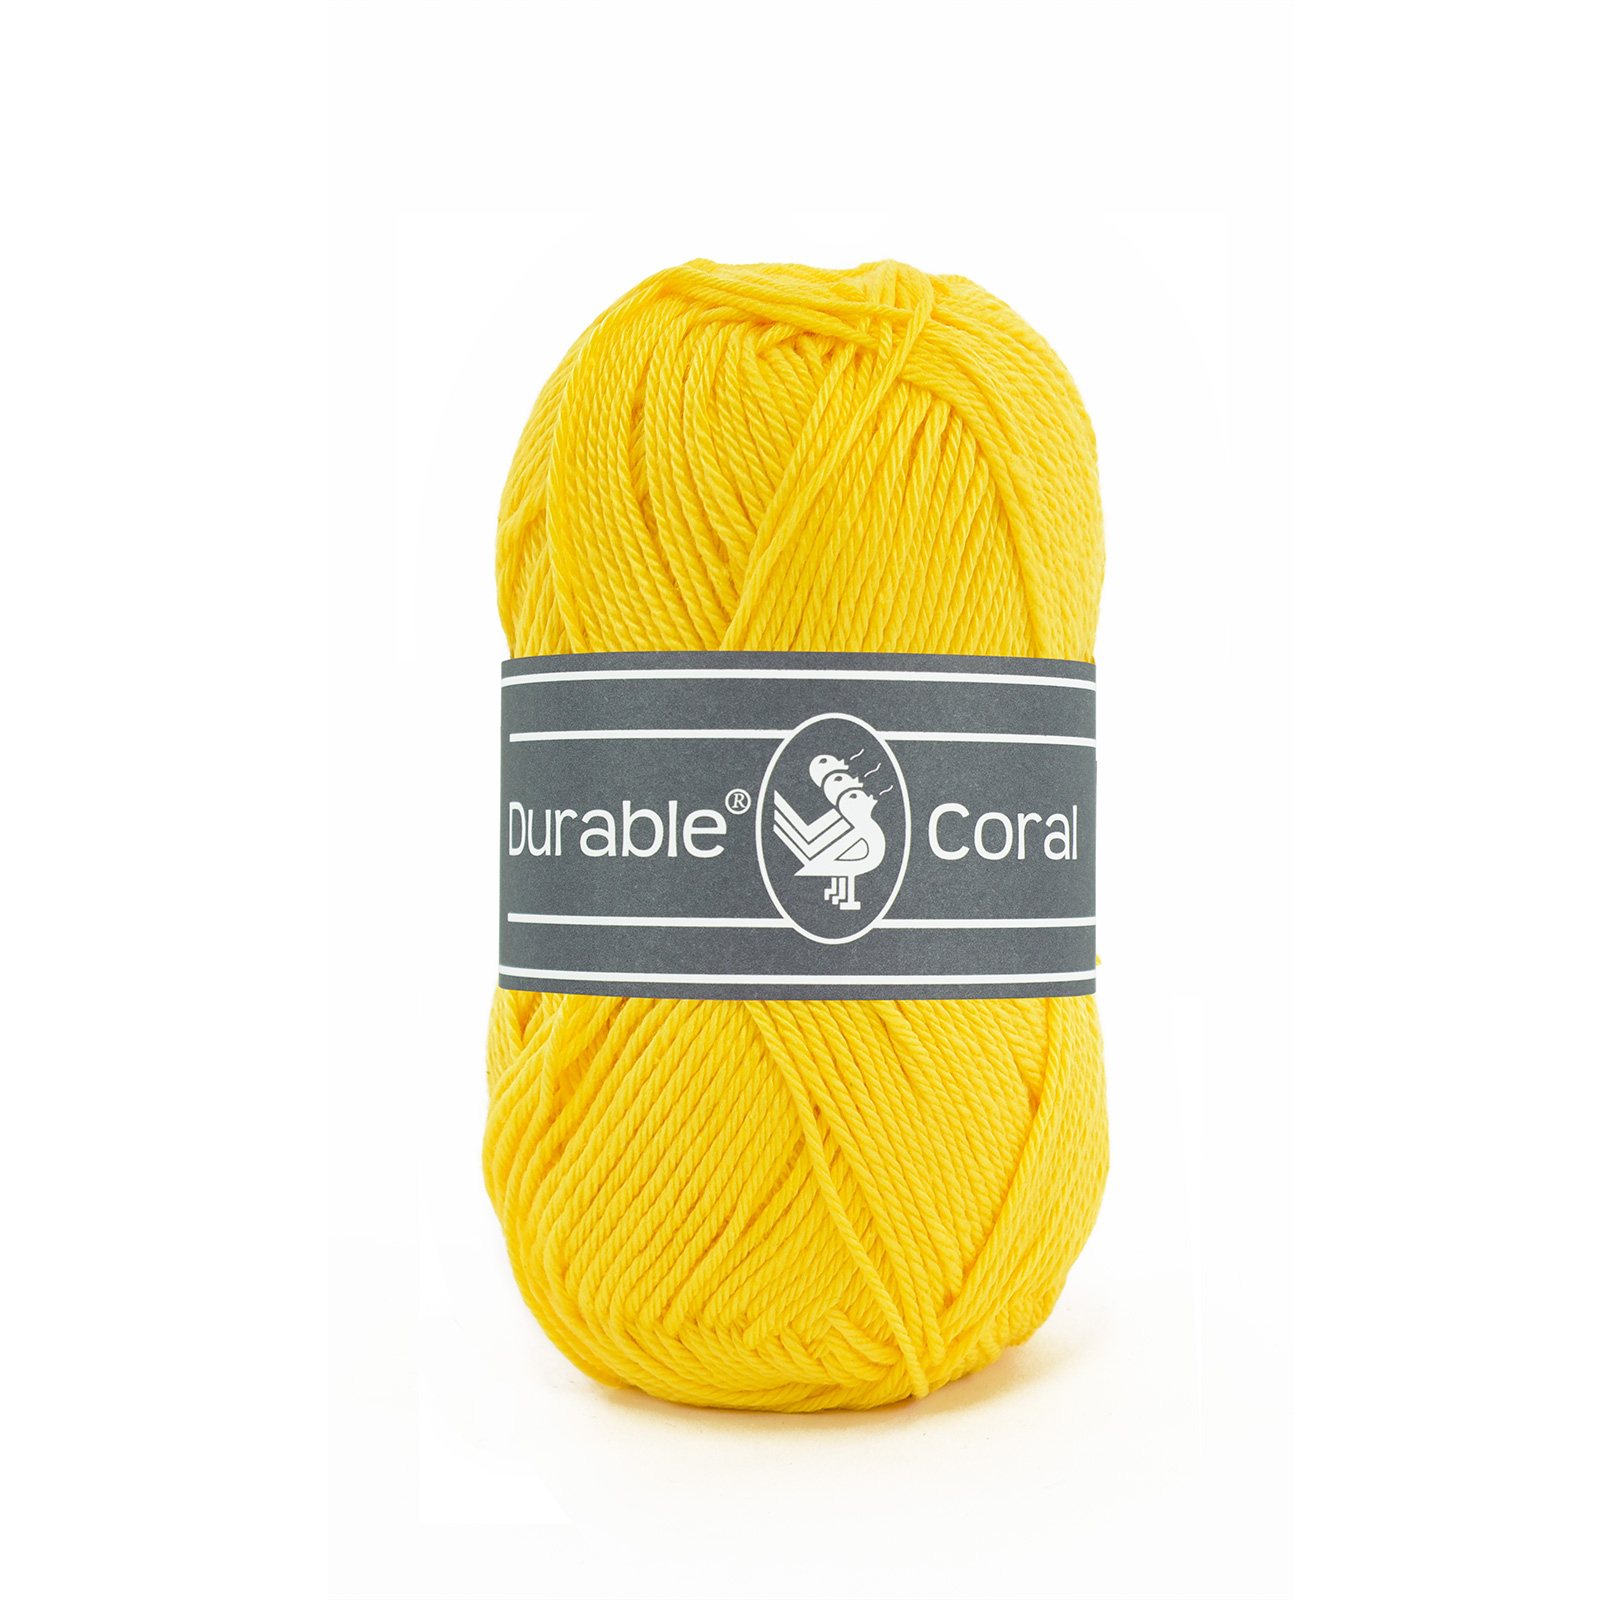 Durable Coral – 2180 Light Yellow